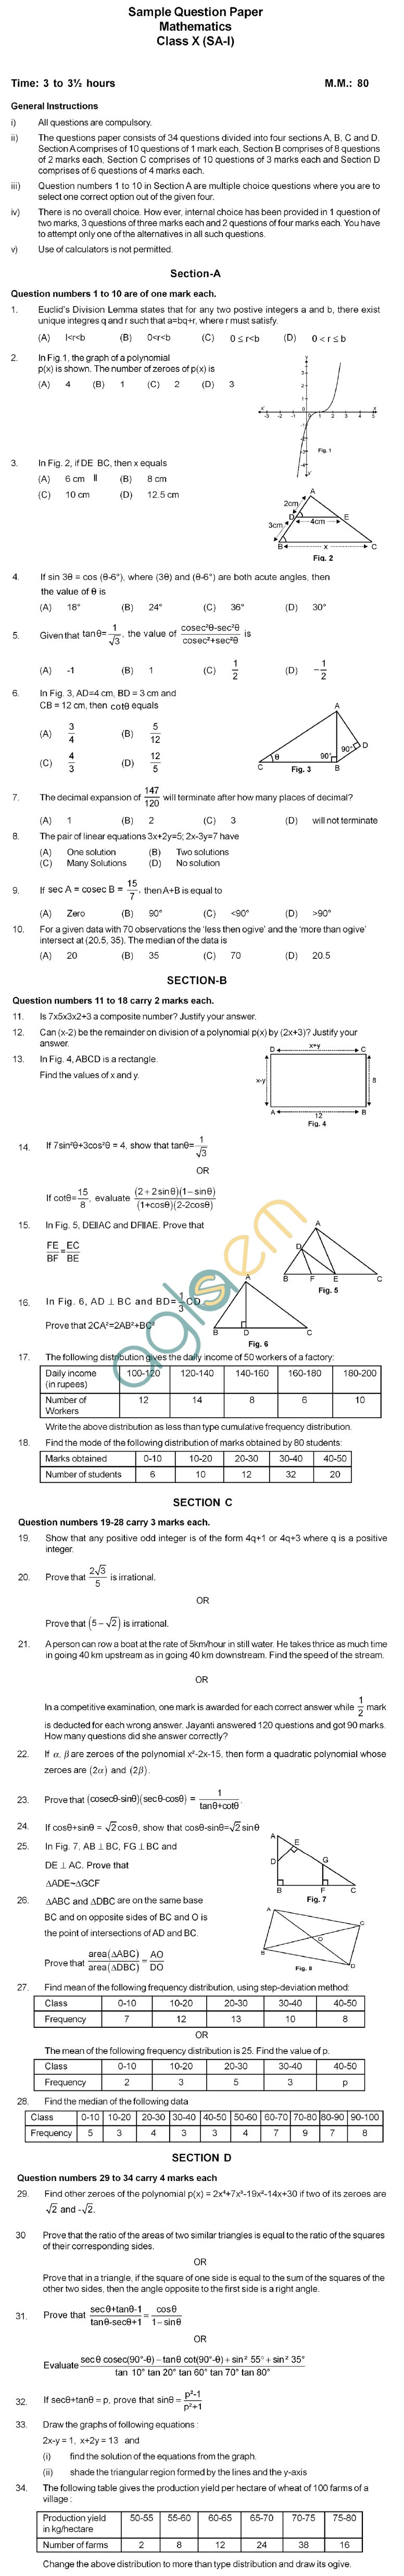 CBSE Board Exam 2013 Sample Papers (SA1) Class IX - Mathematics